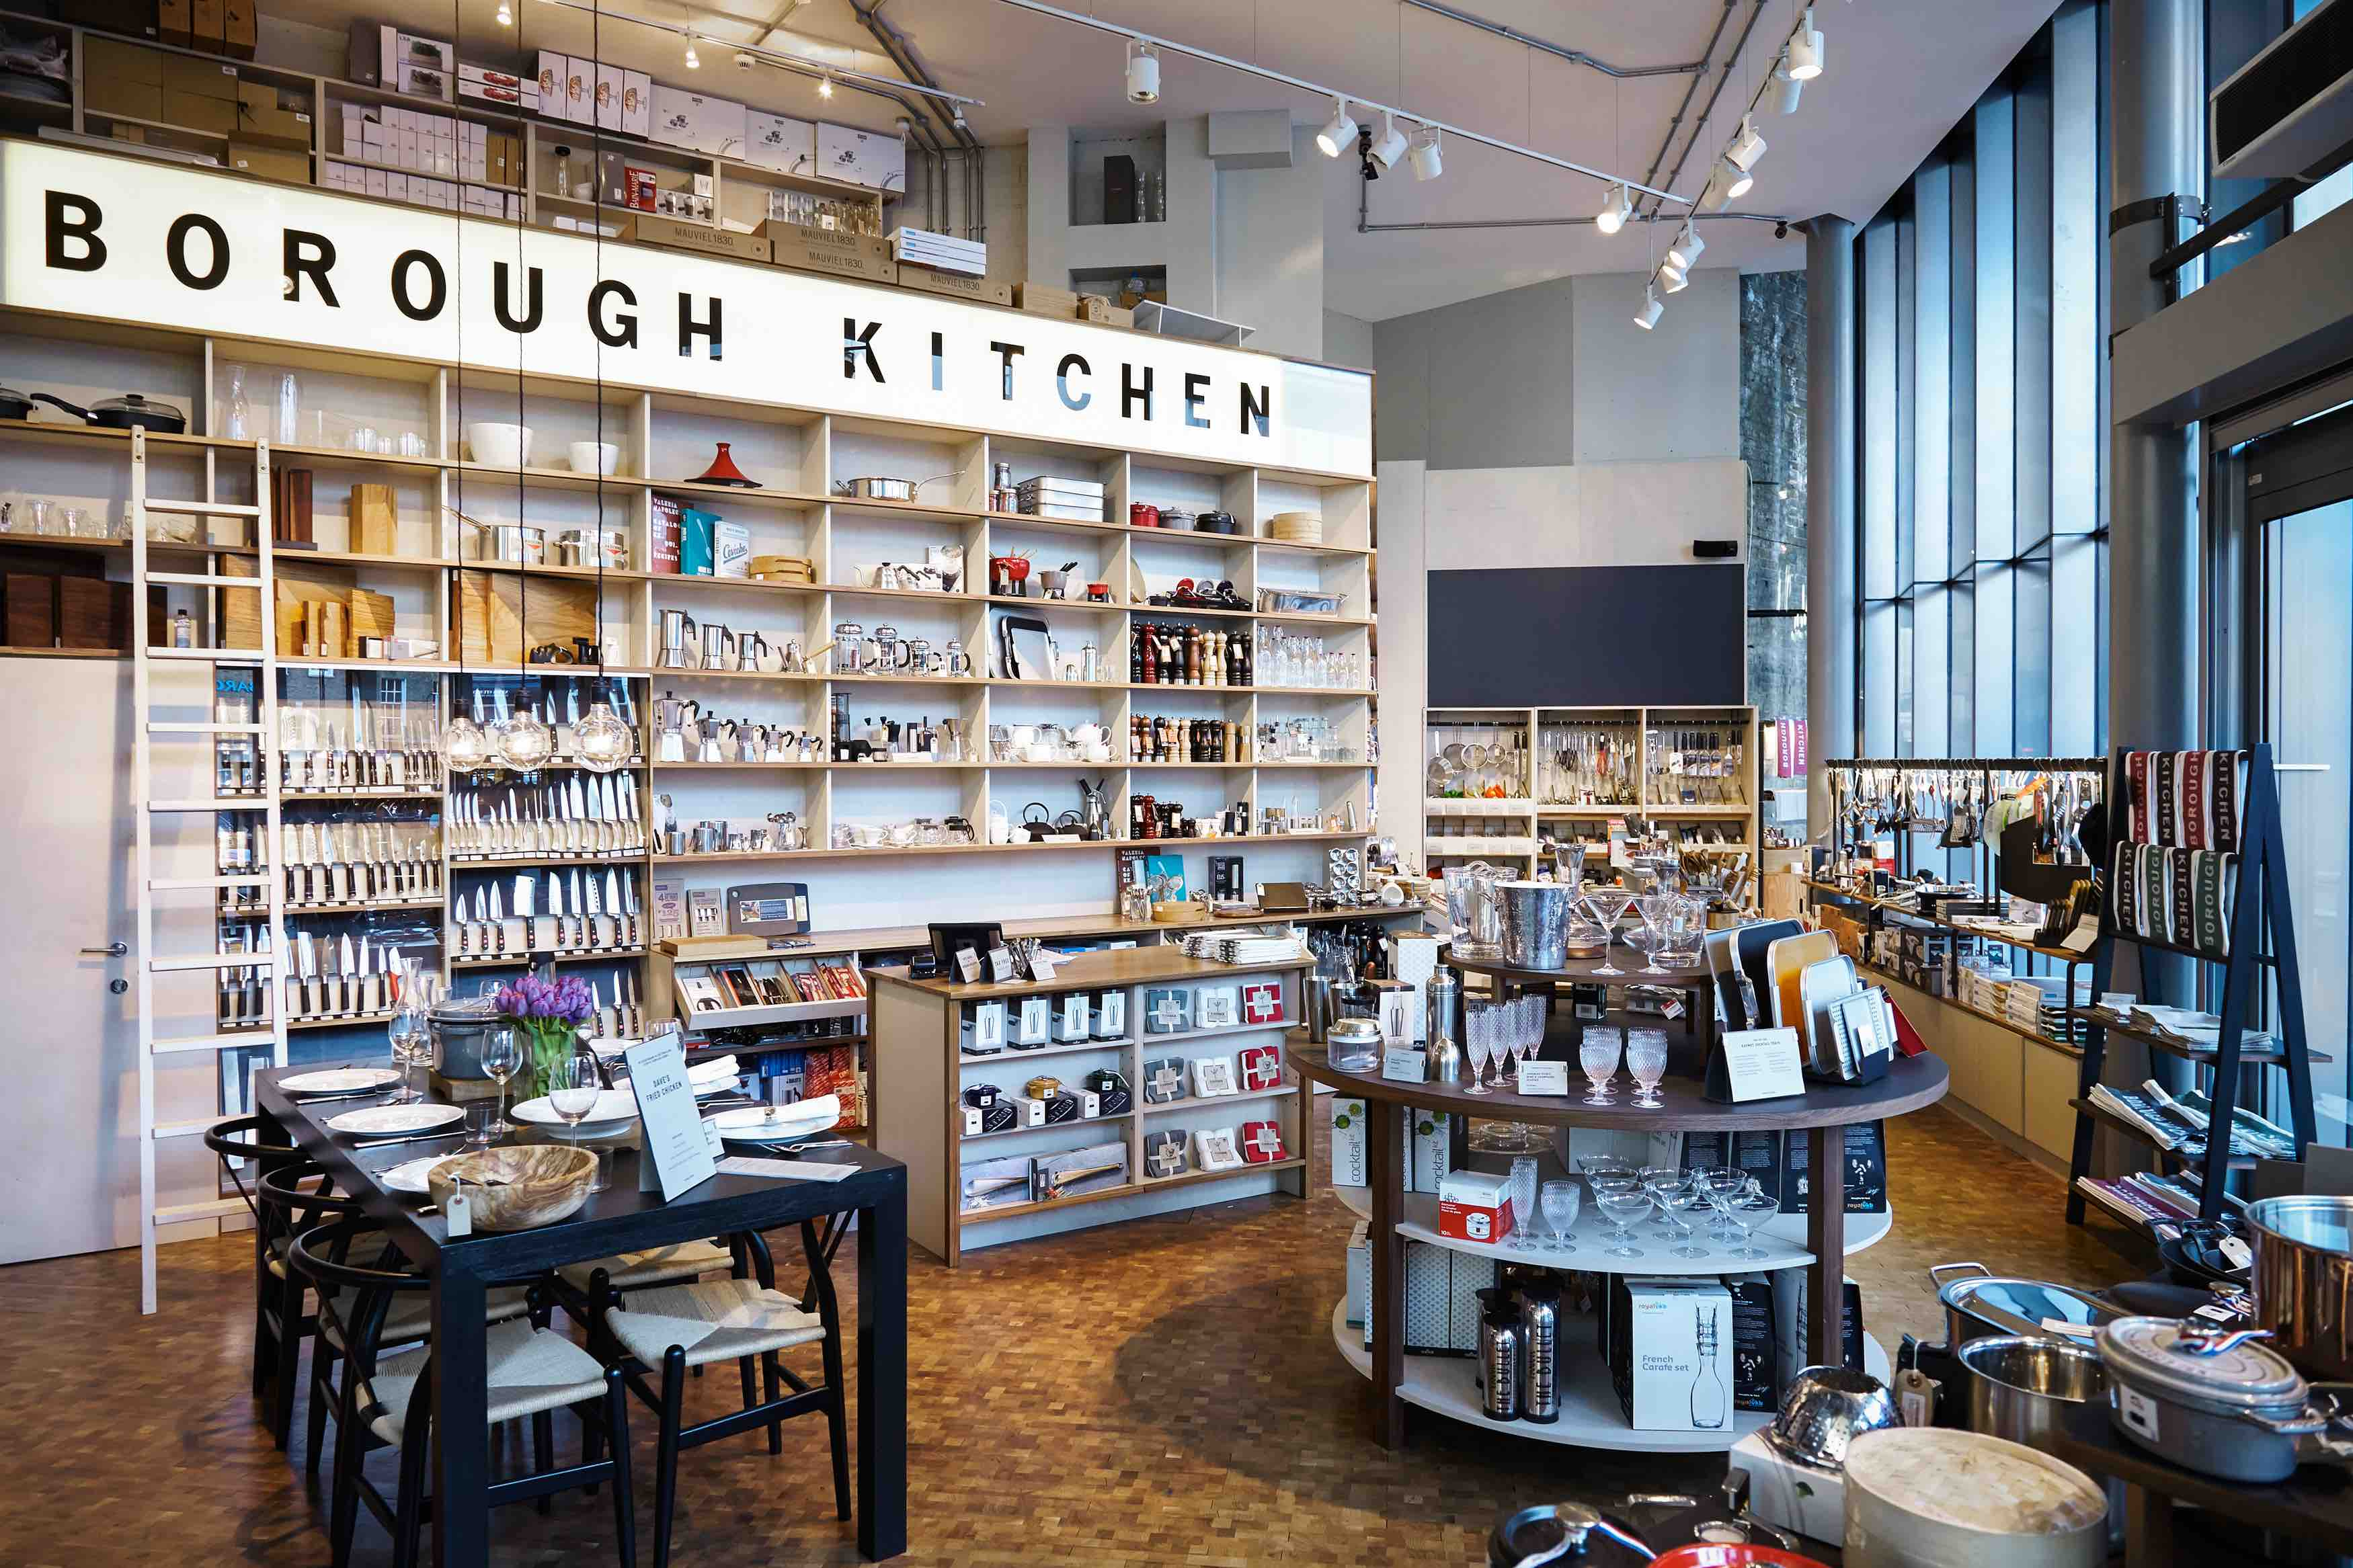 2017 Gia Global Honoree Borough Kitchen International